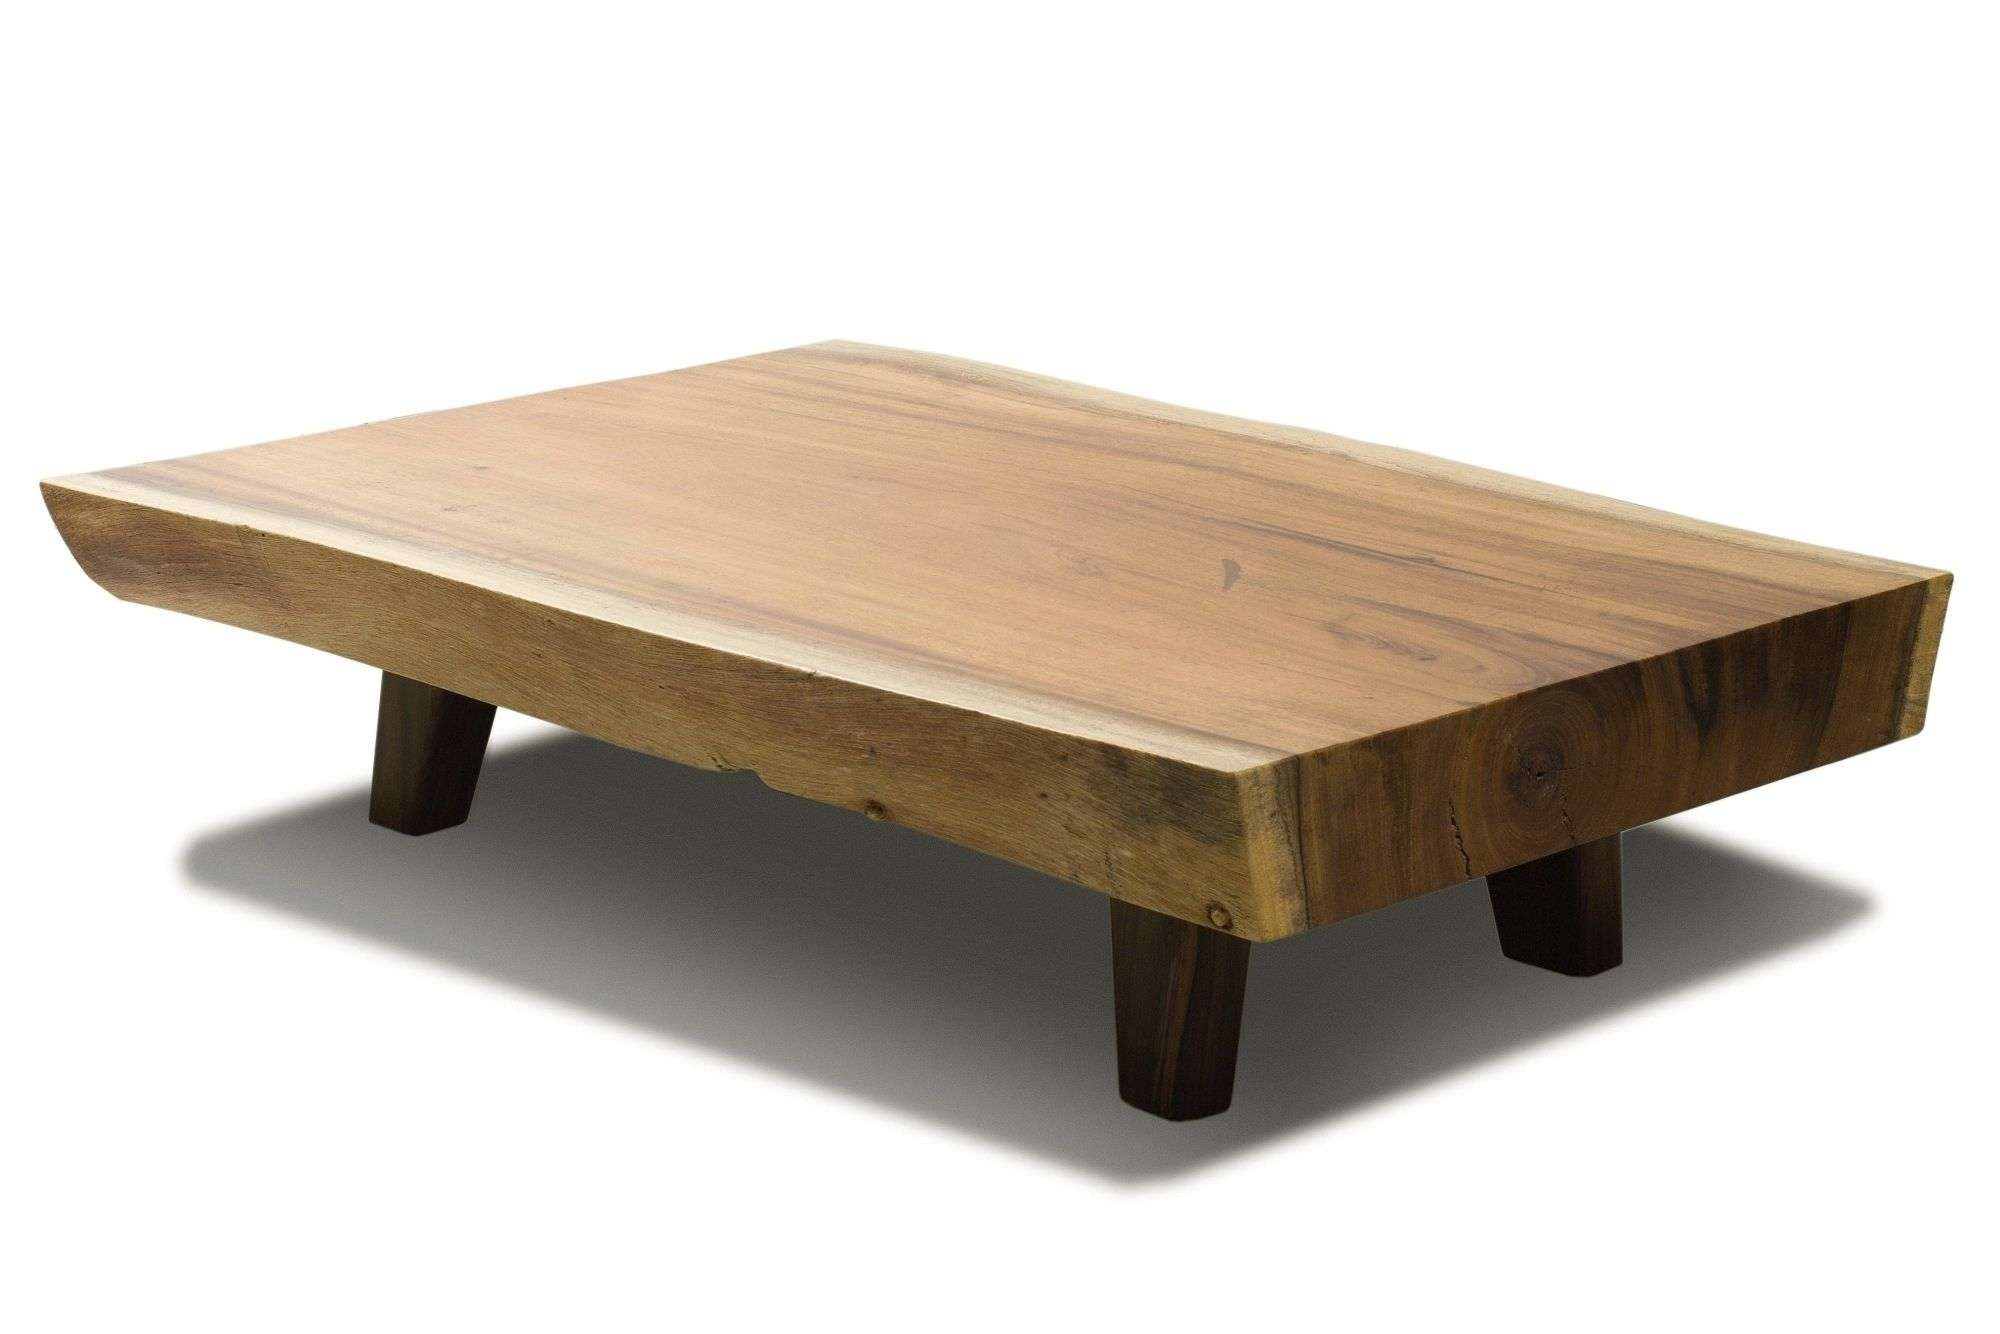 Popular Oak Sleeper Coffee Tables For Solid Wood Coffee Table Wooden Center Table (View 14 of 20)